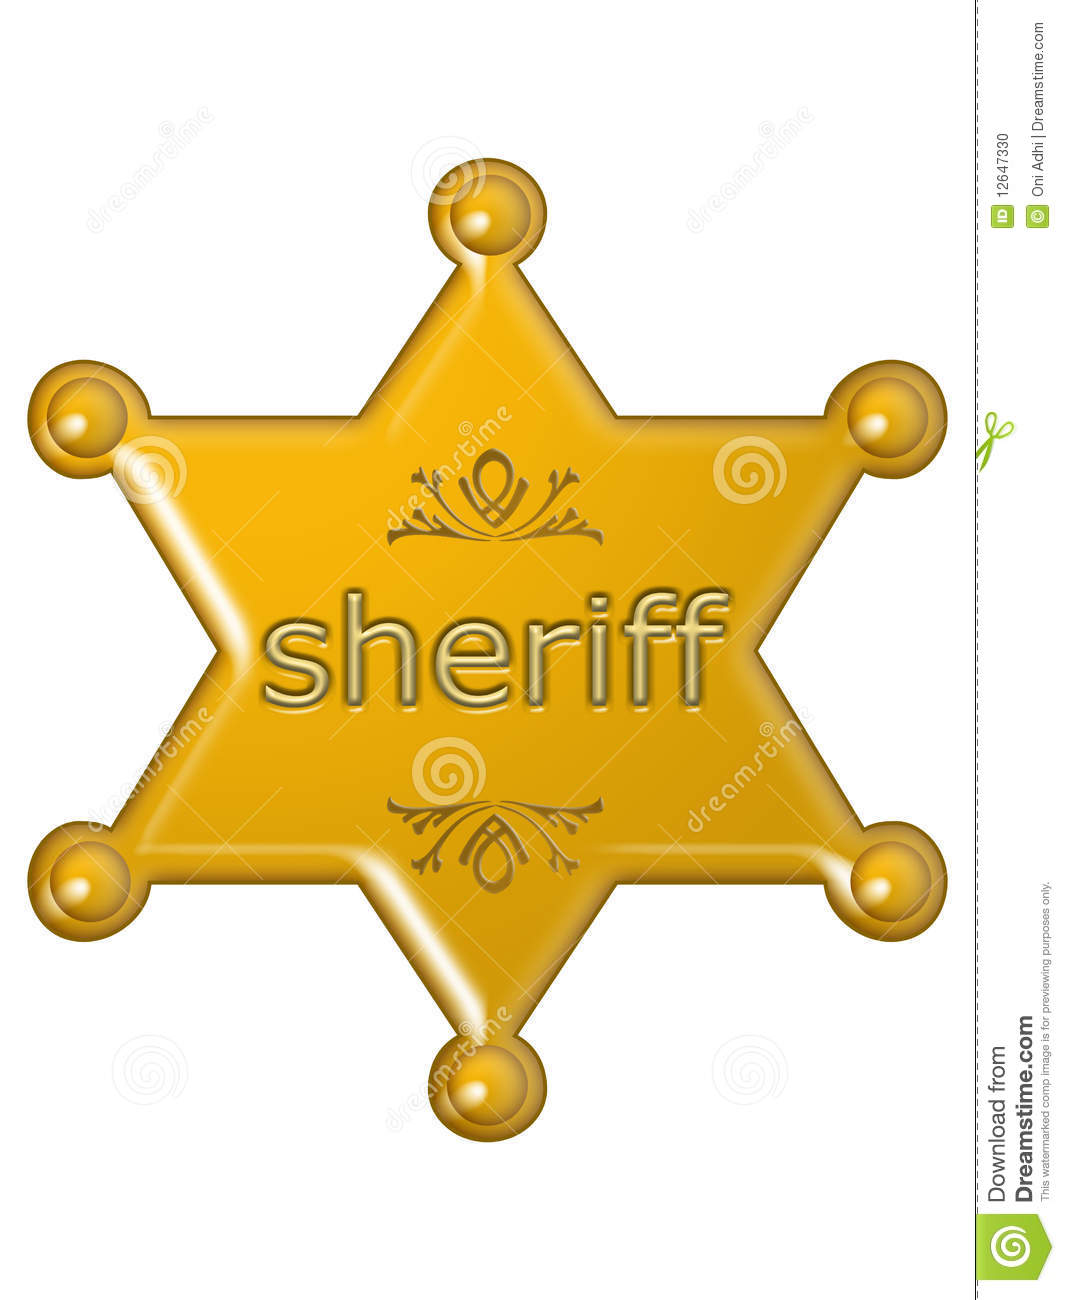 Stock Photo Sheriff Star Image12647330 on award graphics clip art